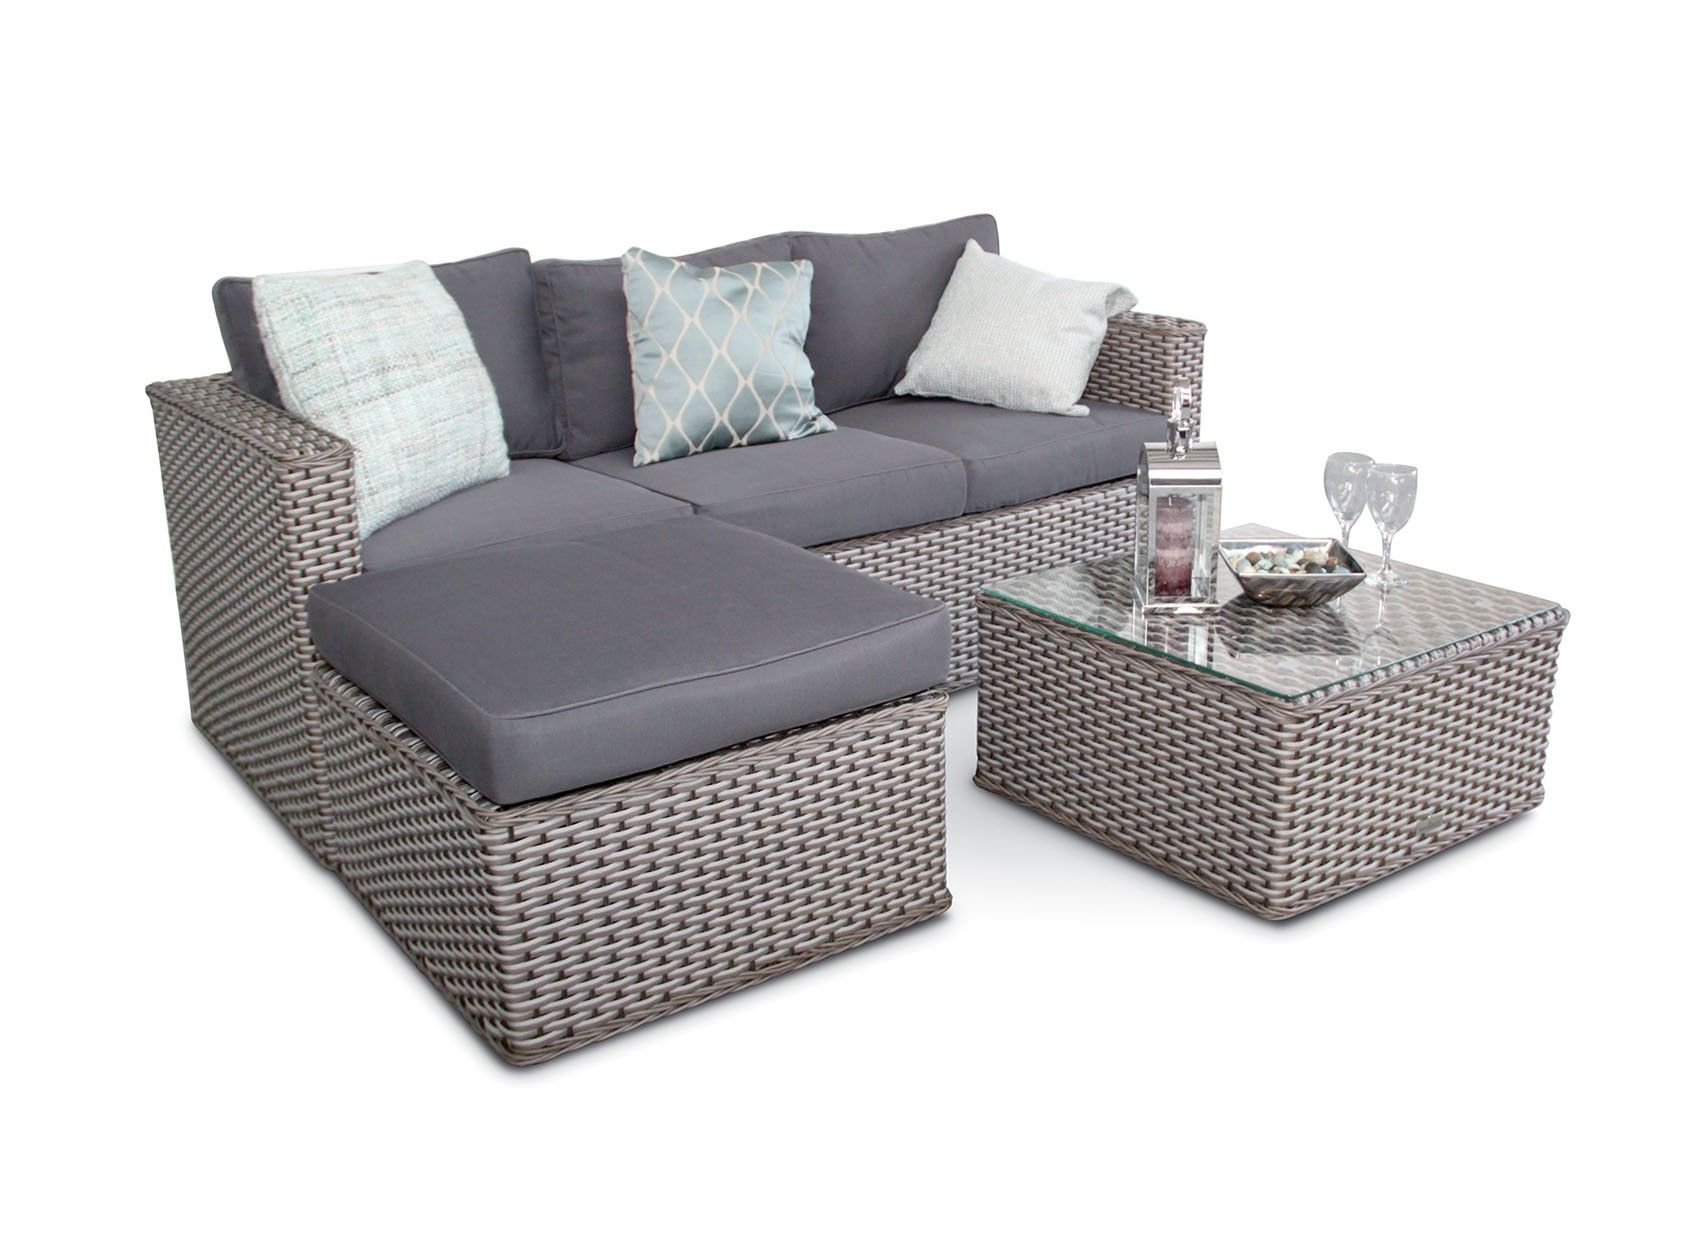 Rattan 3 Piece Sofa Bahamas Rattan 3 Seater Outdoor Sofa Set 5 Seater Whitewash